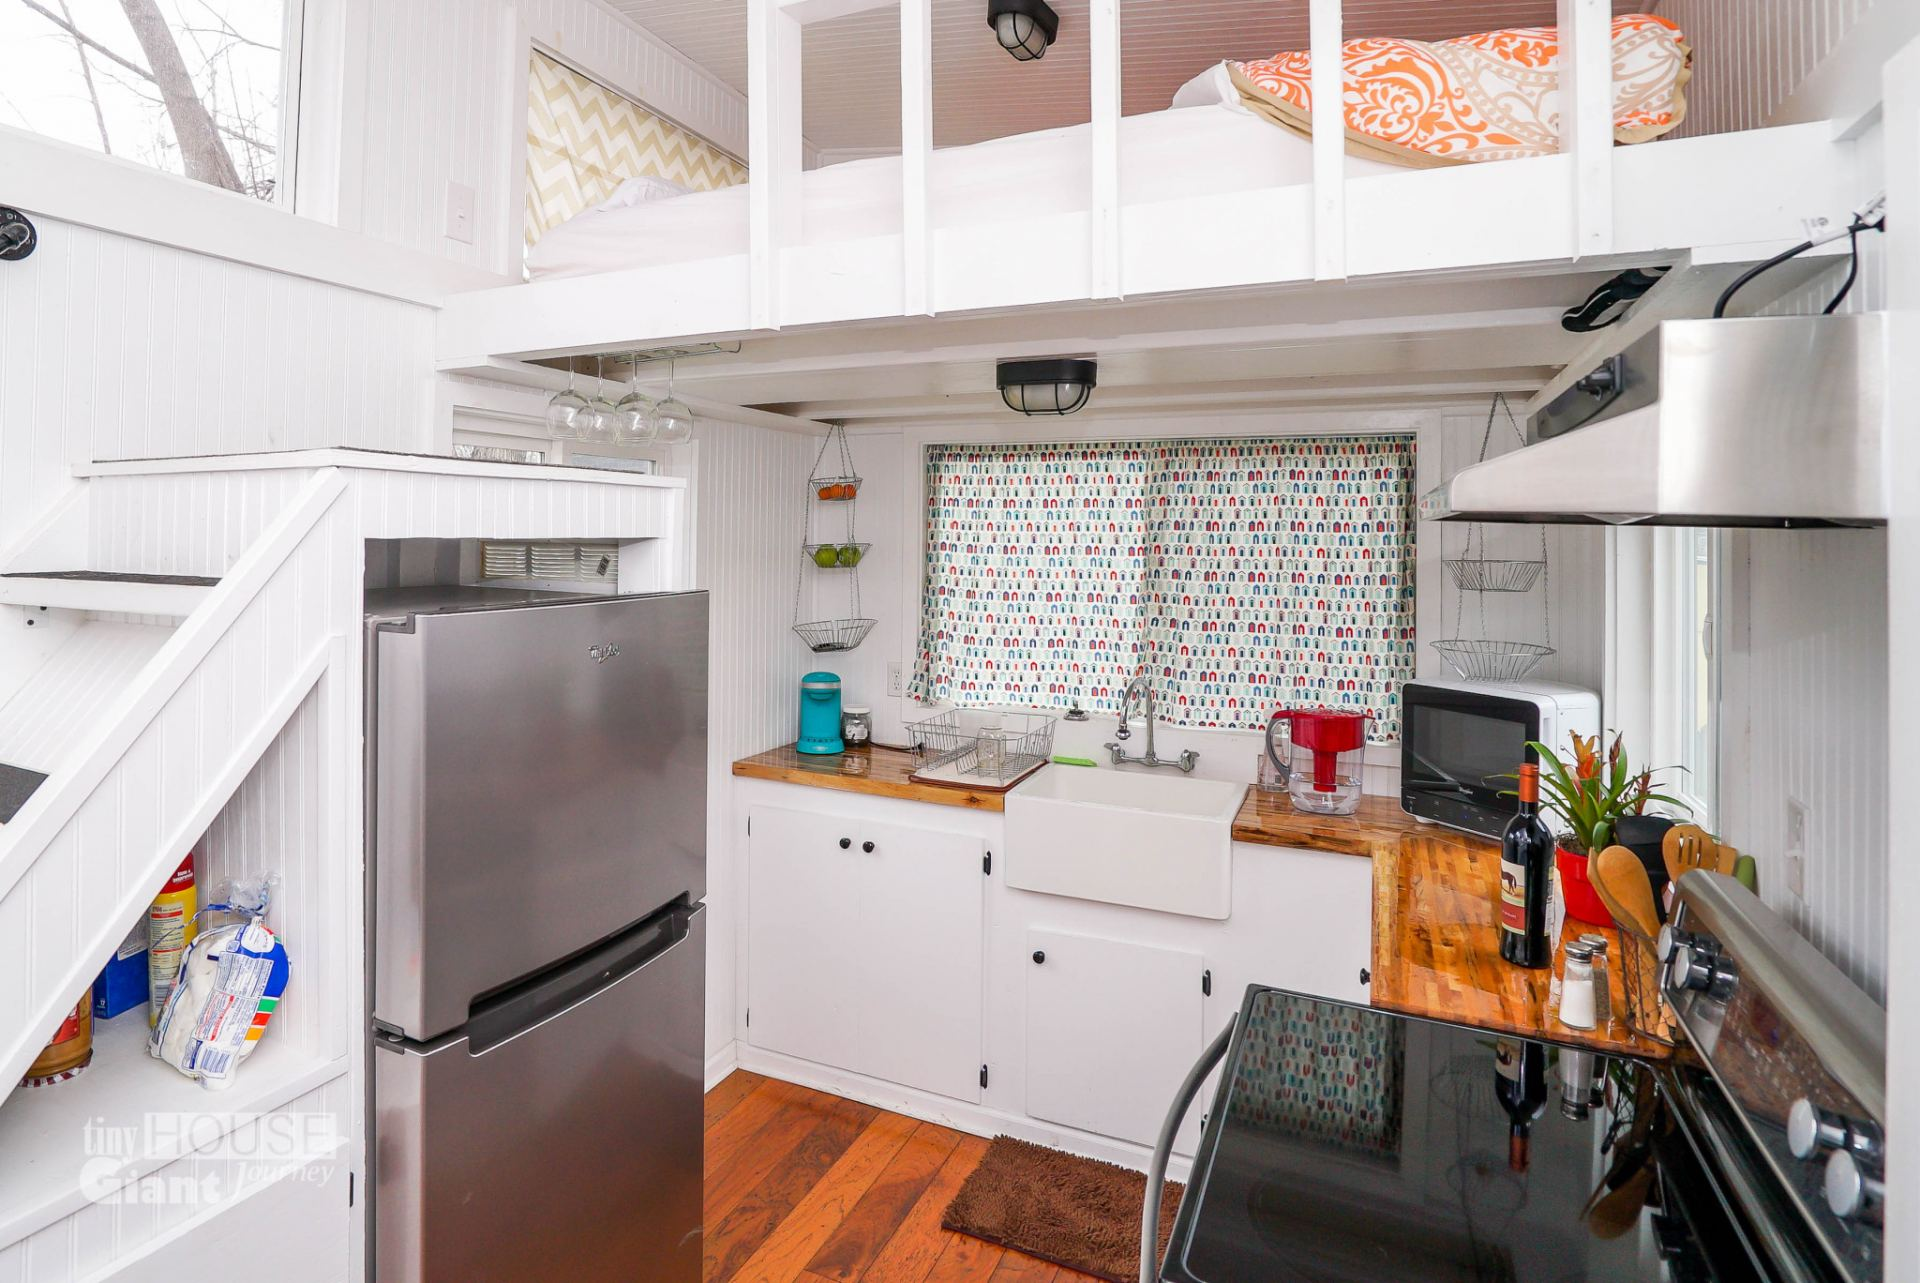 10 tiny house tricks to declutter your kitchen counters for Tiny house blueprint maker